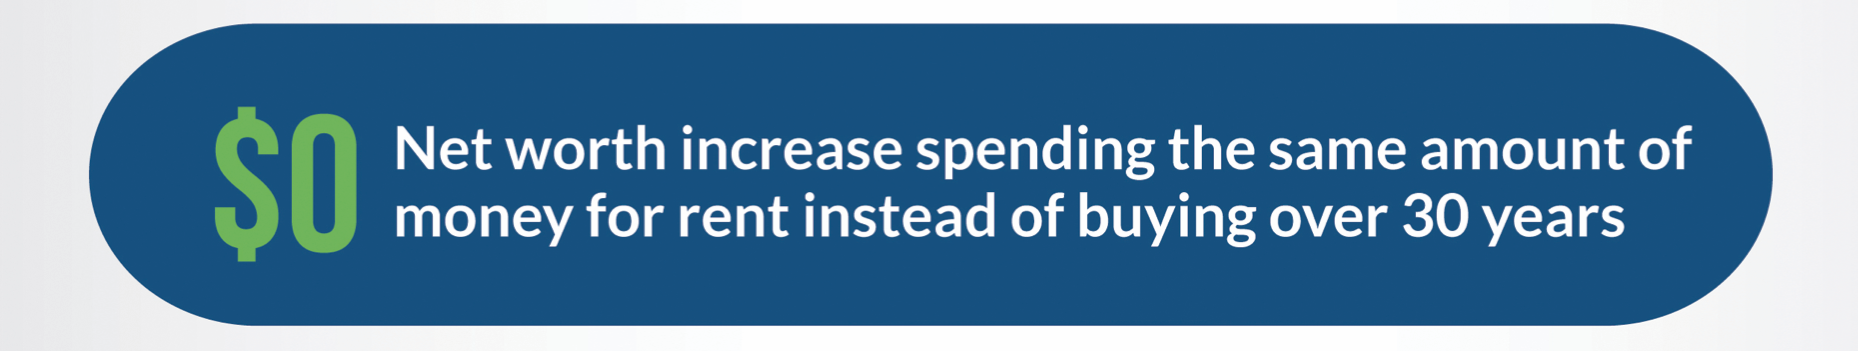 """A graphic with a blue background and rounded edges that reads """"$0 net worth increase spending the same amount of money for rent instead of buying over 30 years."""""""